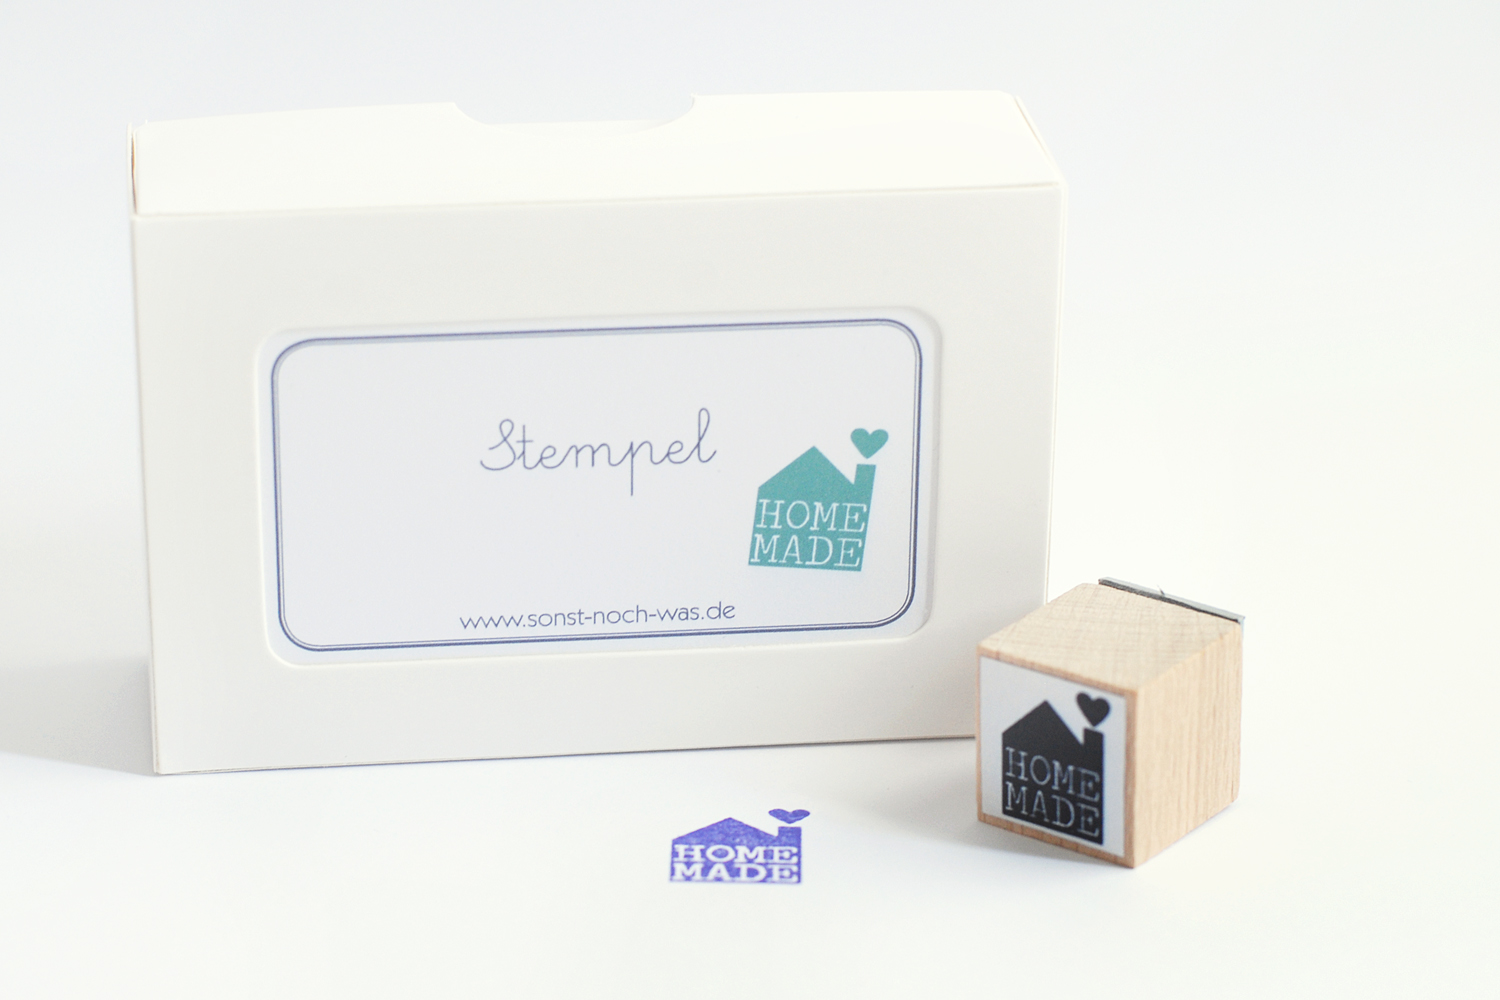 stempel_home_made_web